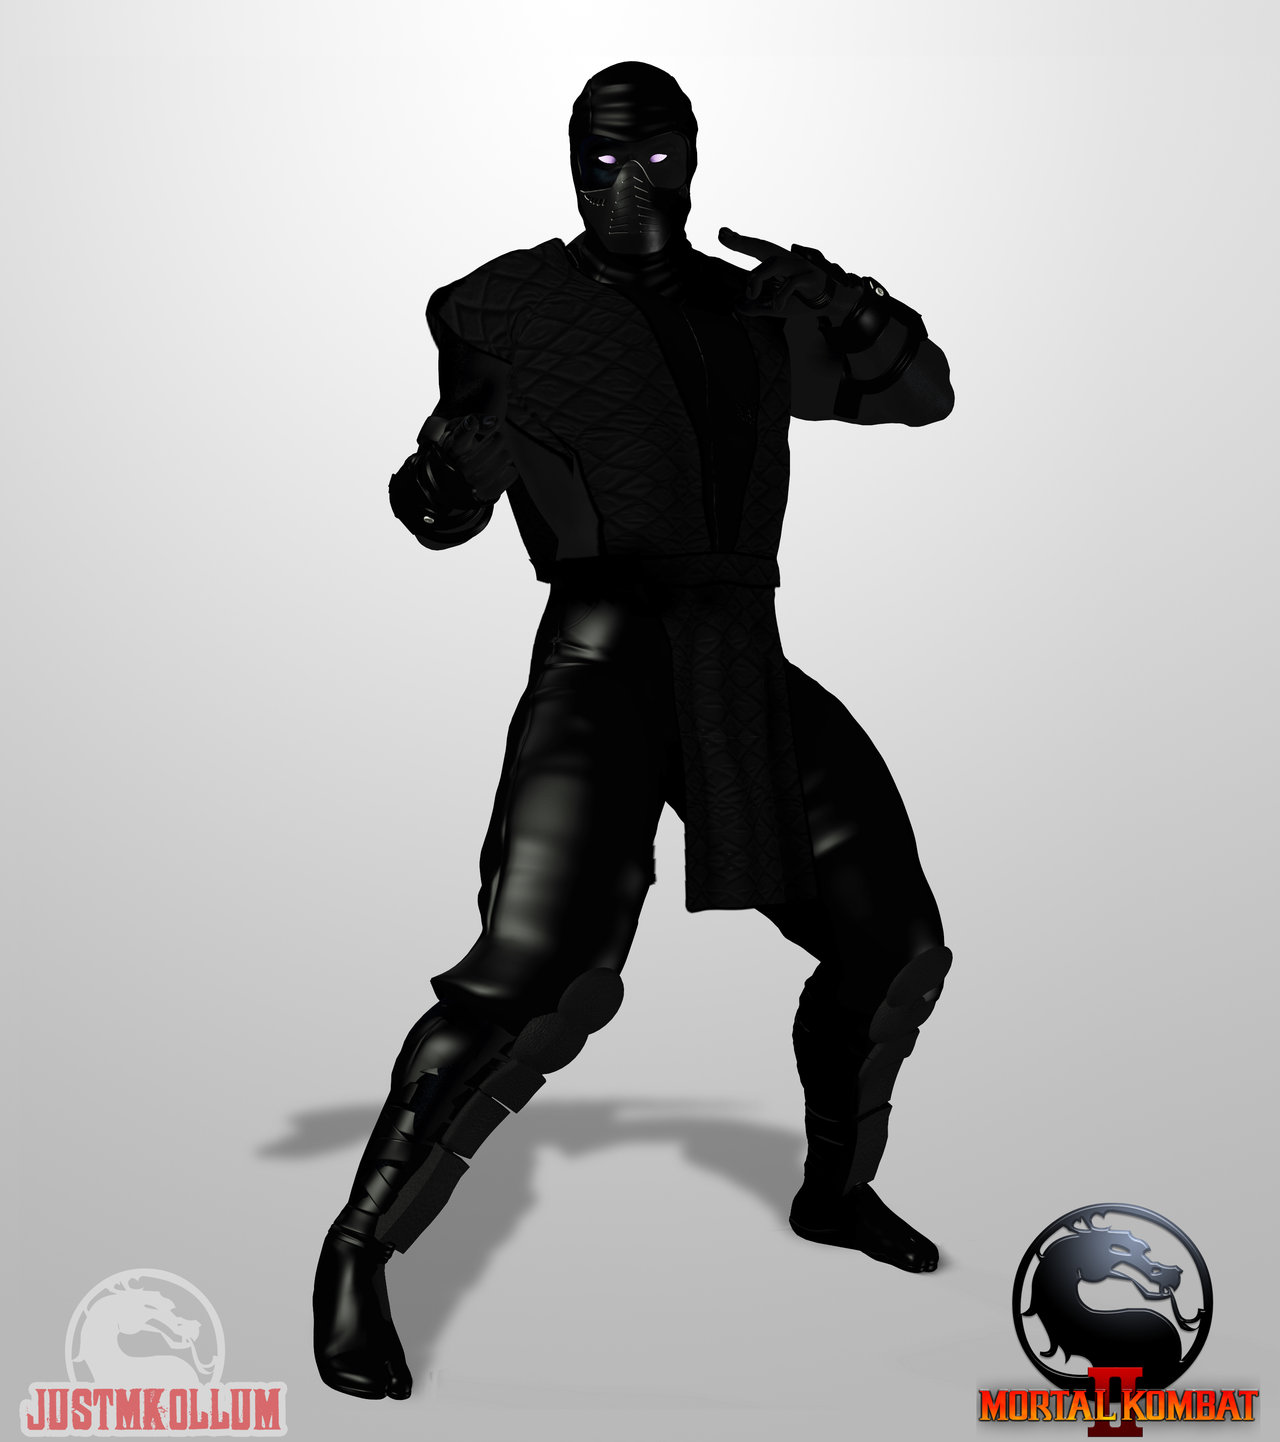 noob-saibot-Mortal-Kombat-II-HD-Noob-Saibot-by-JustMKollum-on-deviantART-wallpaper-wp428001-1